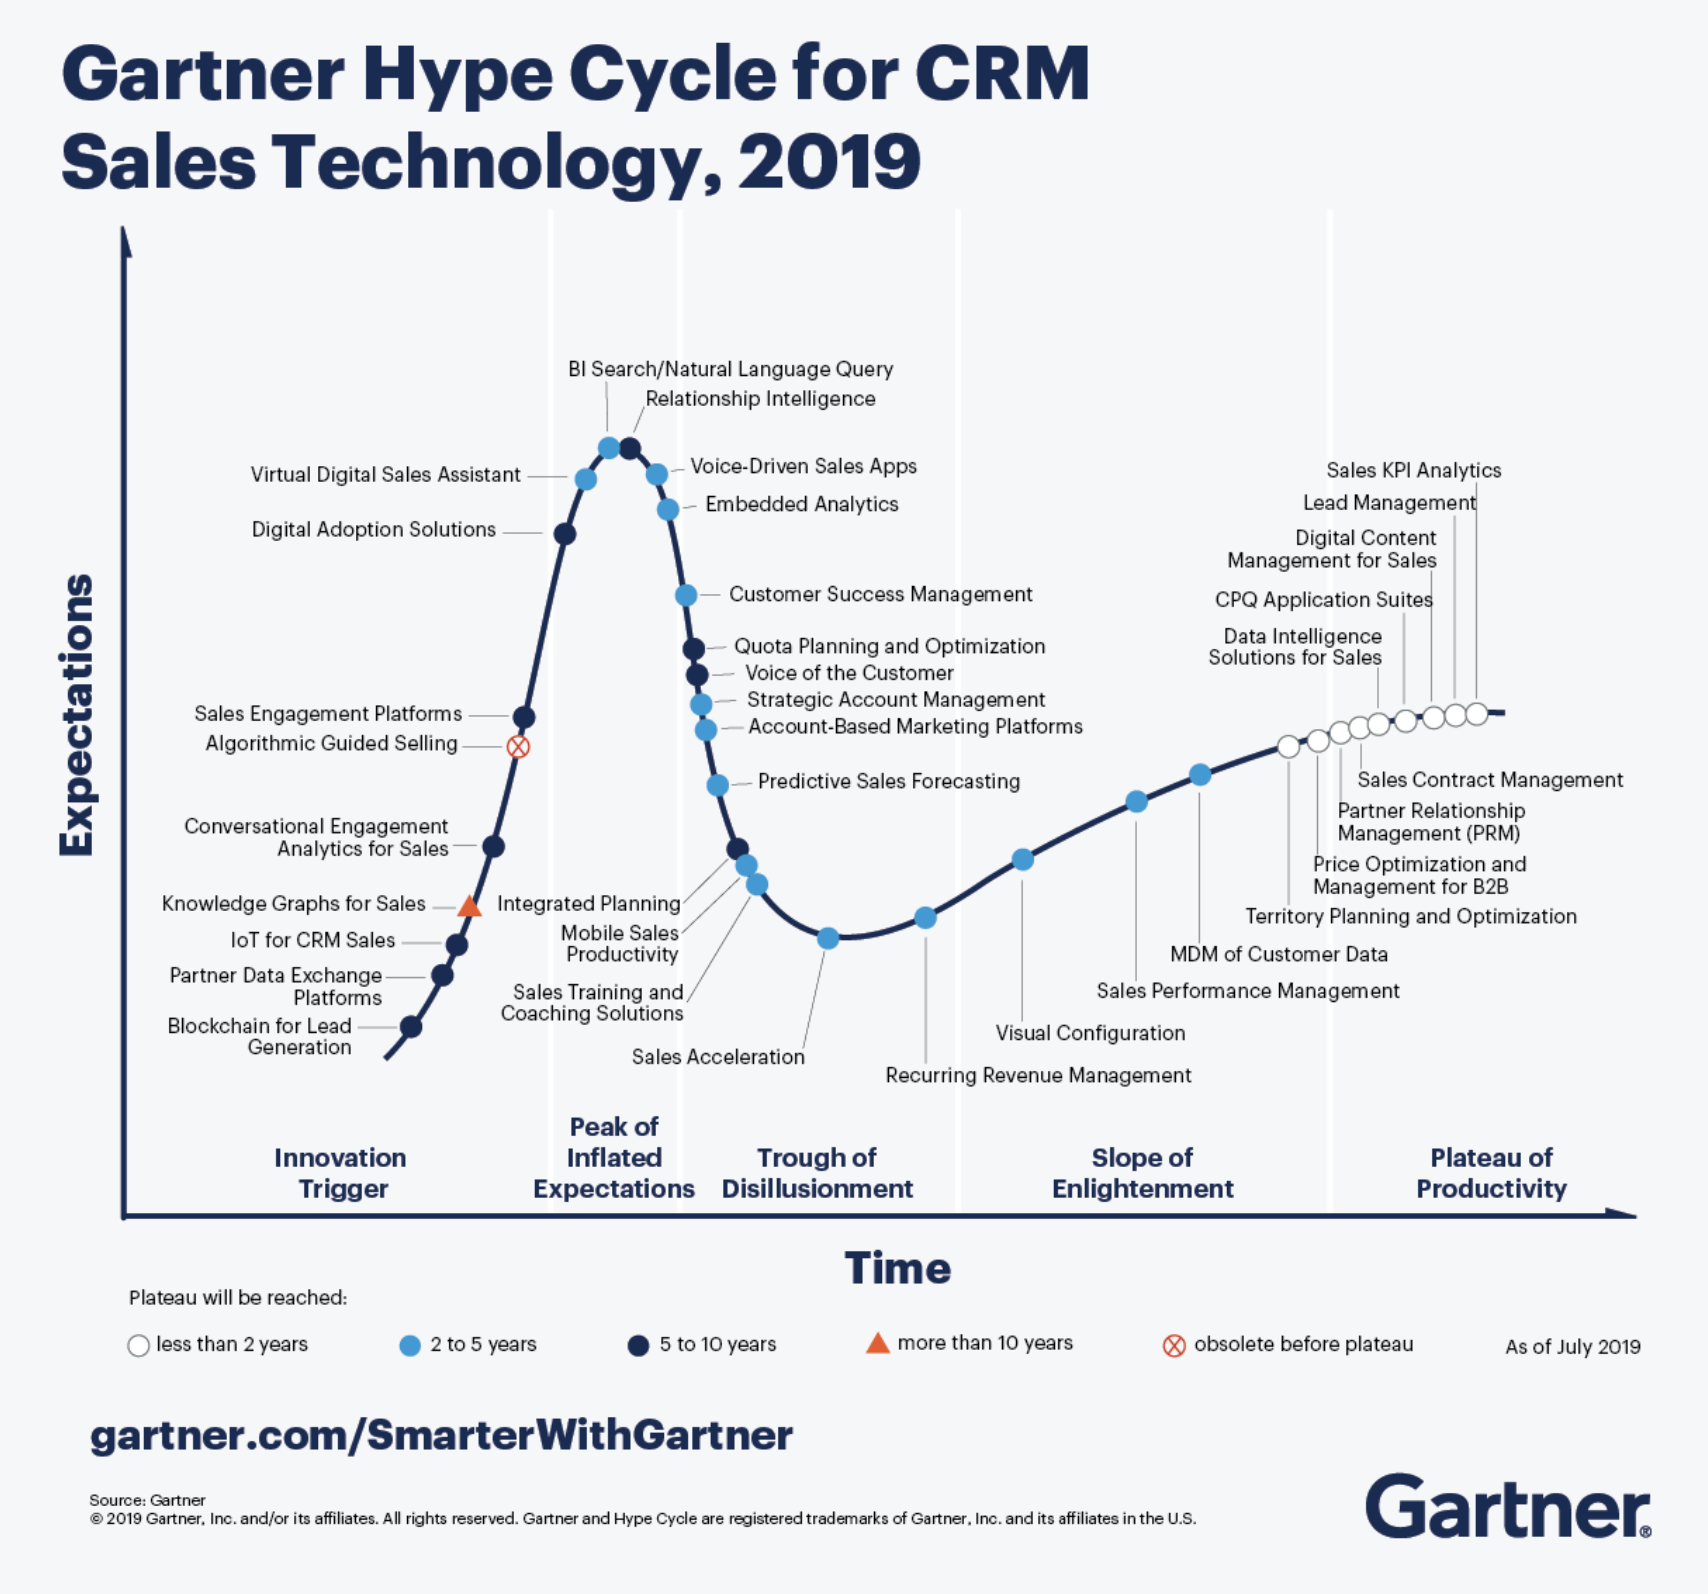 The Gartner Hype Cycle for CRM Sales Technology